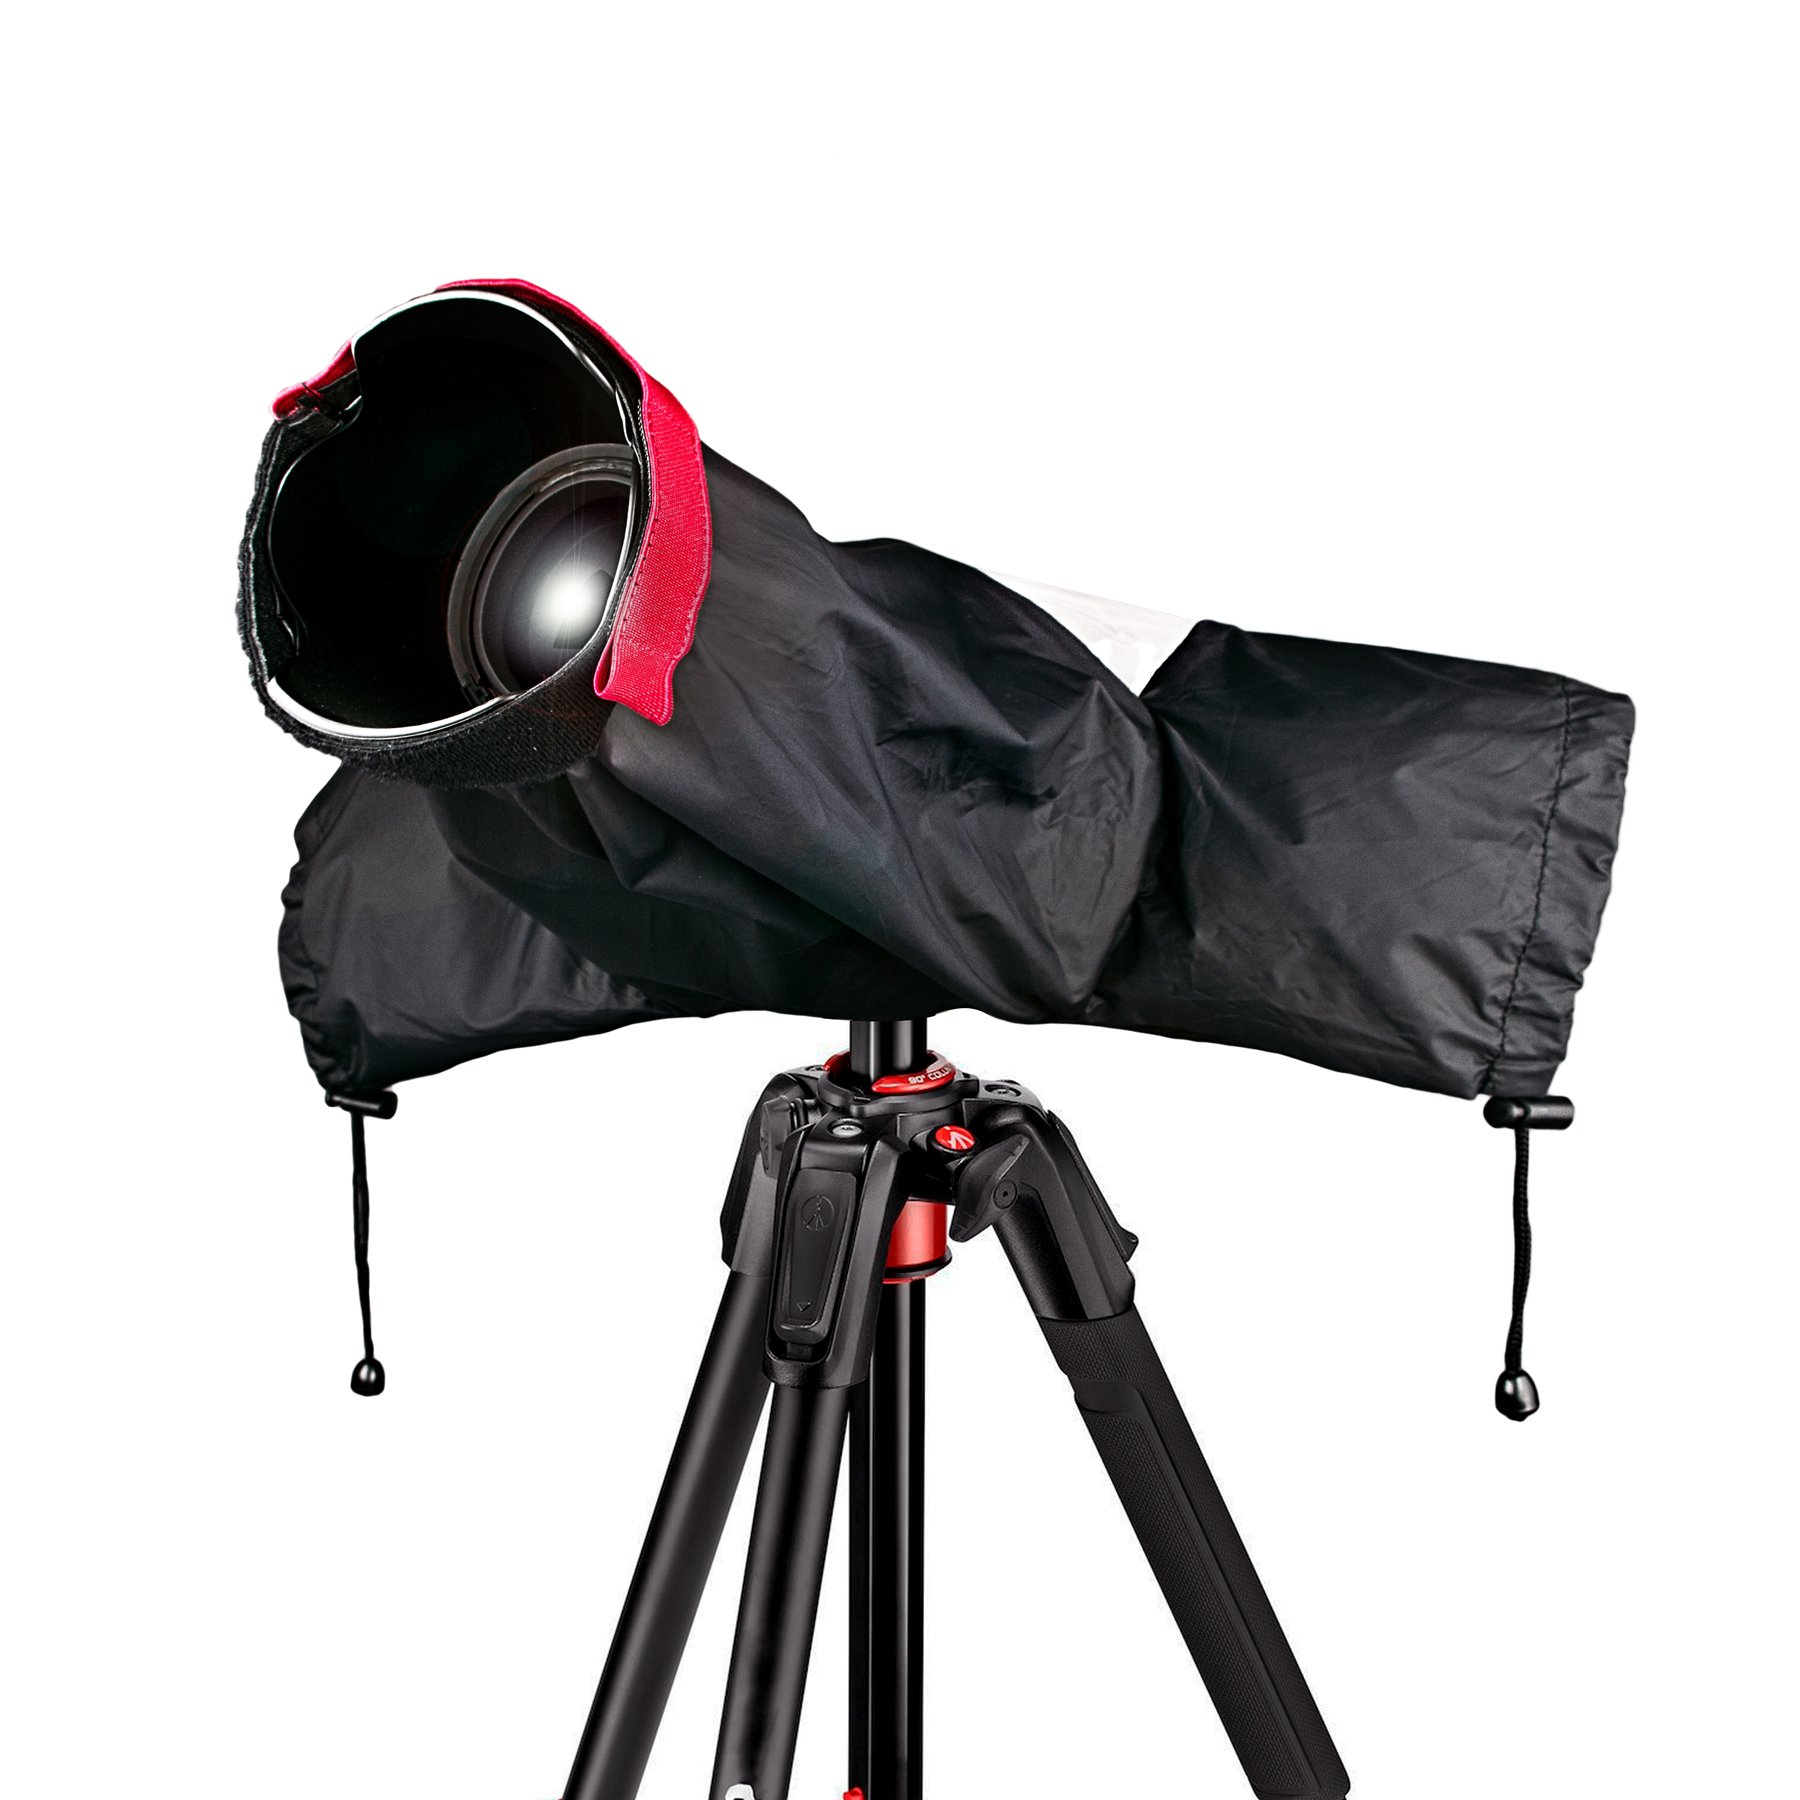 Professional Rain Cover Camera Protector for Canon Nikon Pentax and other DSLR Cameras - Great for Rain Dirt Sand Snow Protection by ANTVEE